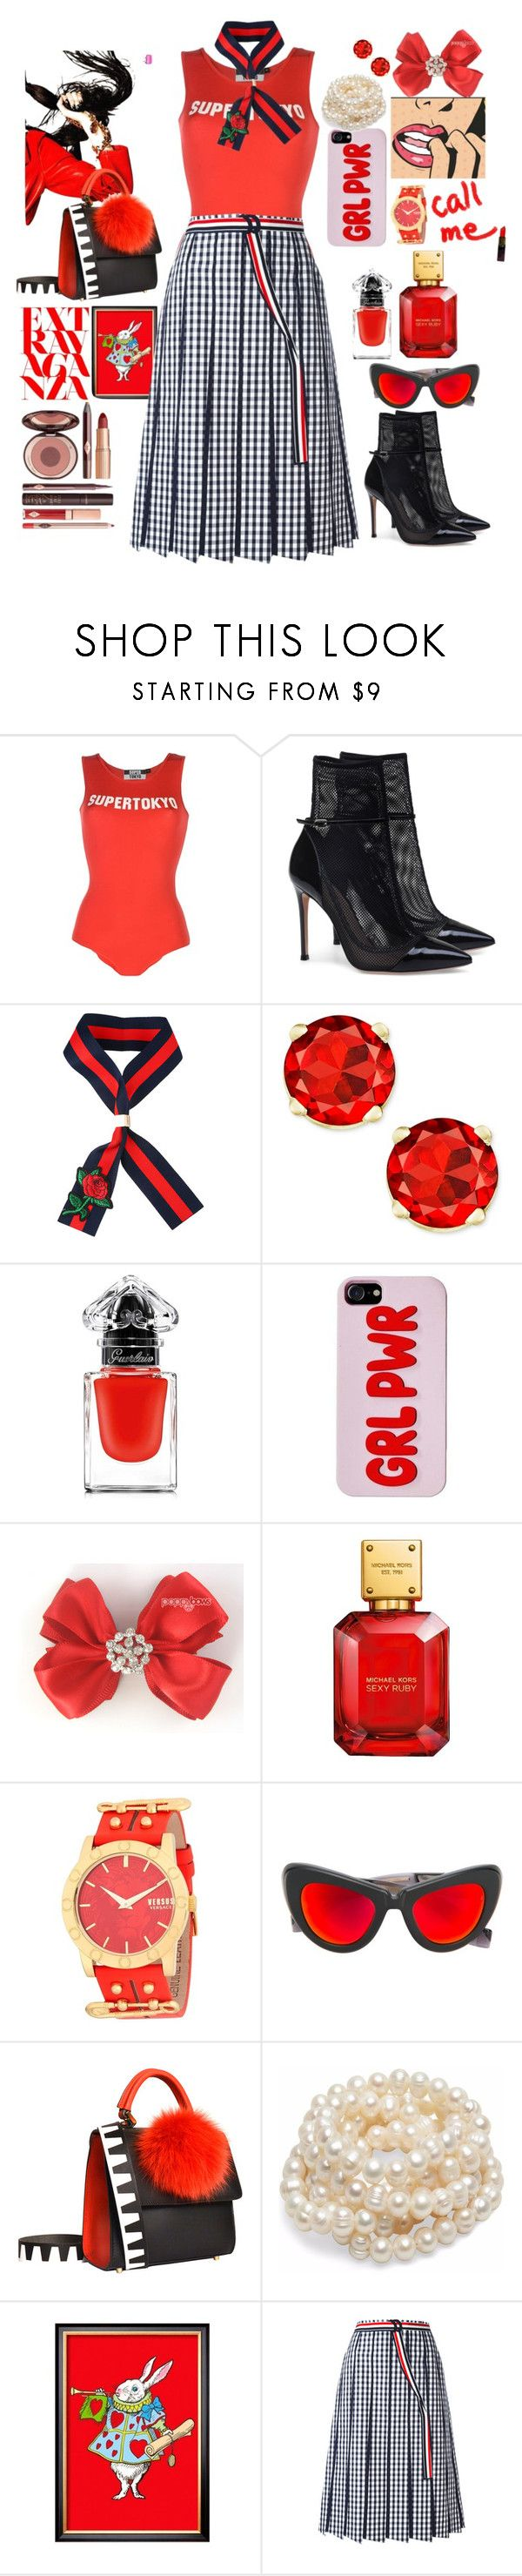 """""""Alice"""" by hyunaluna ❤ liked on Polyvore featuring STK SuperTokyo, Guerlain, Charlotte Tilbury, John Lewis, Versus, Jacques Marie Mage, Les Petits Joueurs and Thom Browne"""